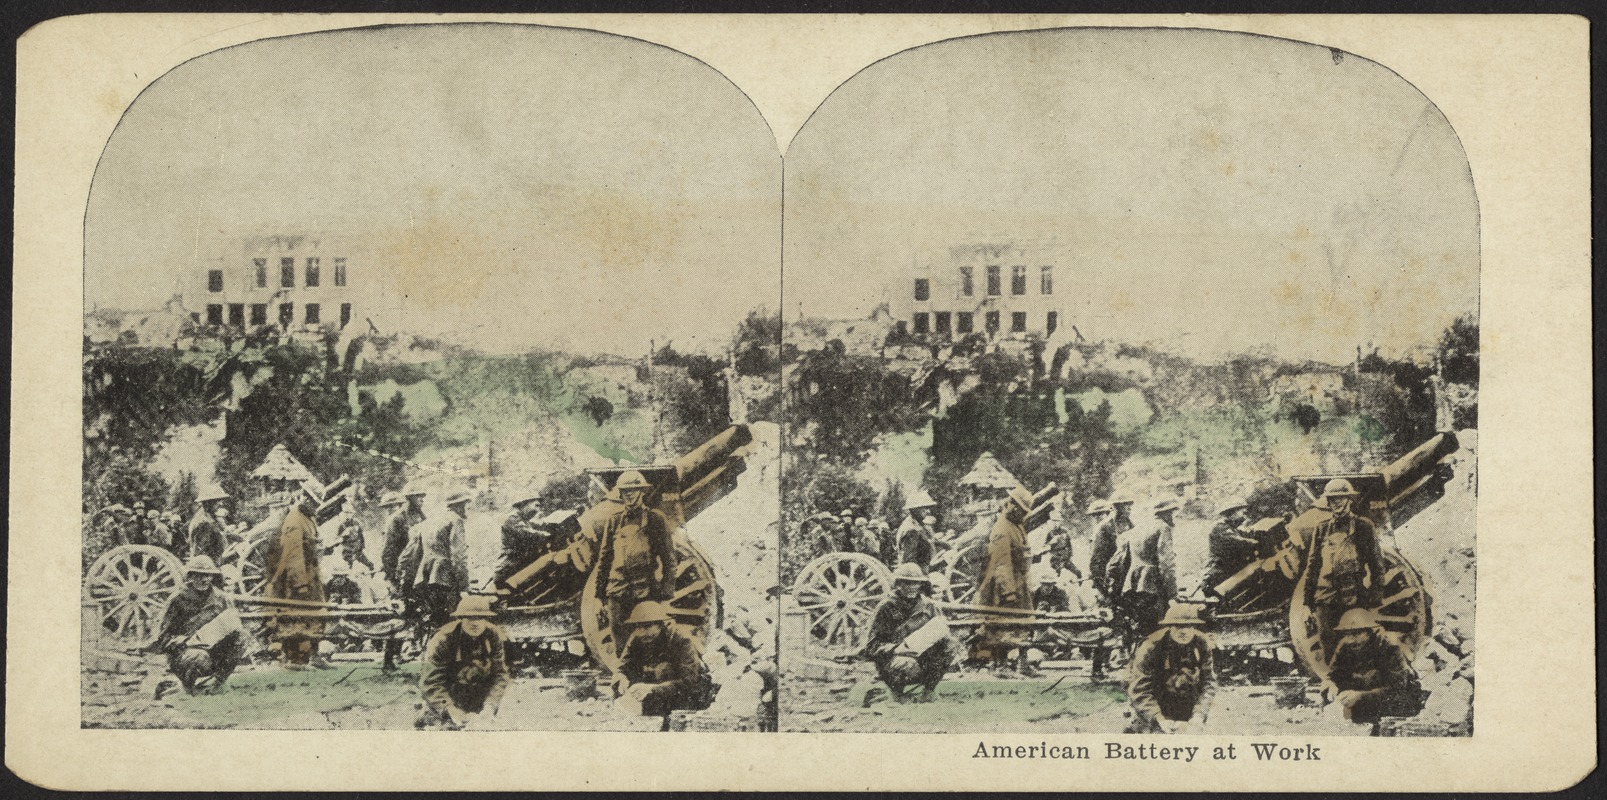 American battery at work